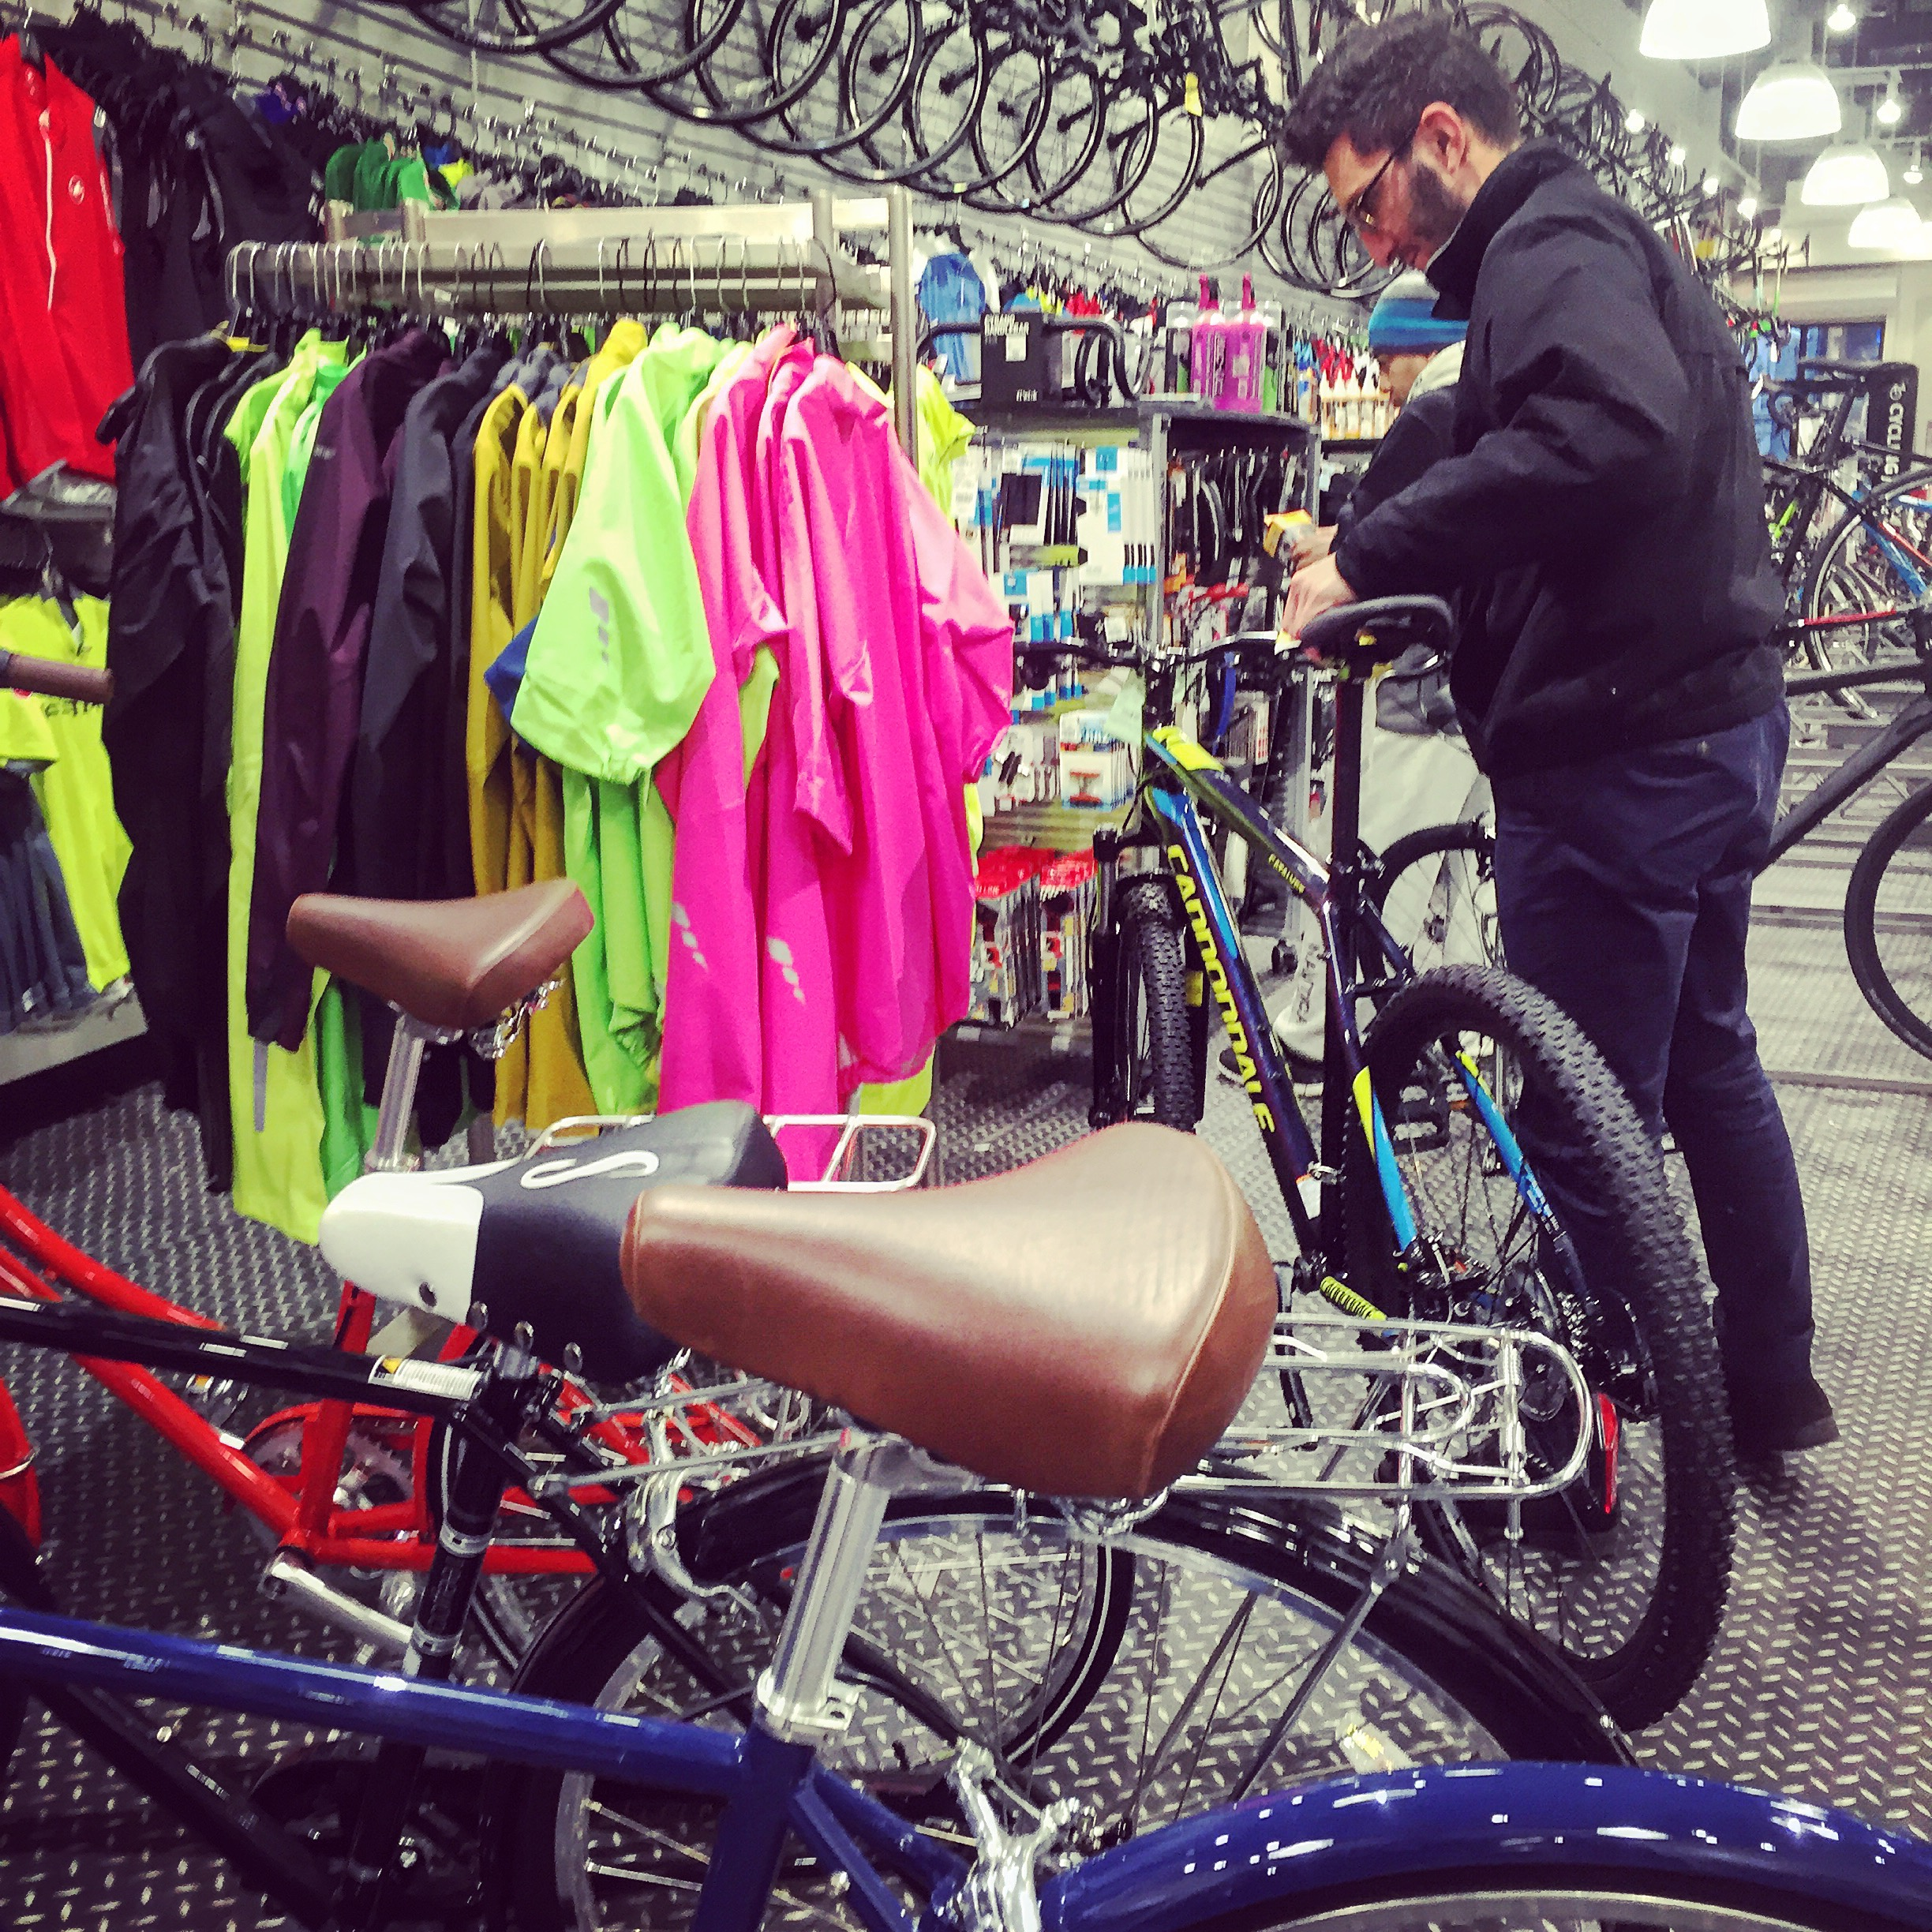 A customer inspects a bike. When it comes to sporting goods, users need to try out the products and be highly reassured they are the right products to purchase for them.